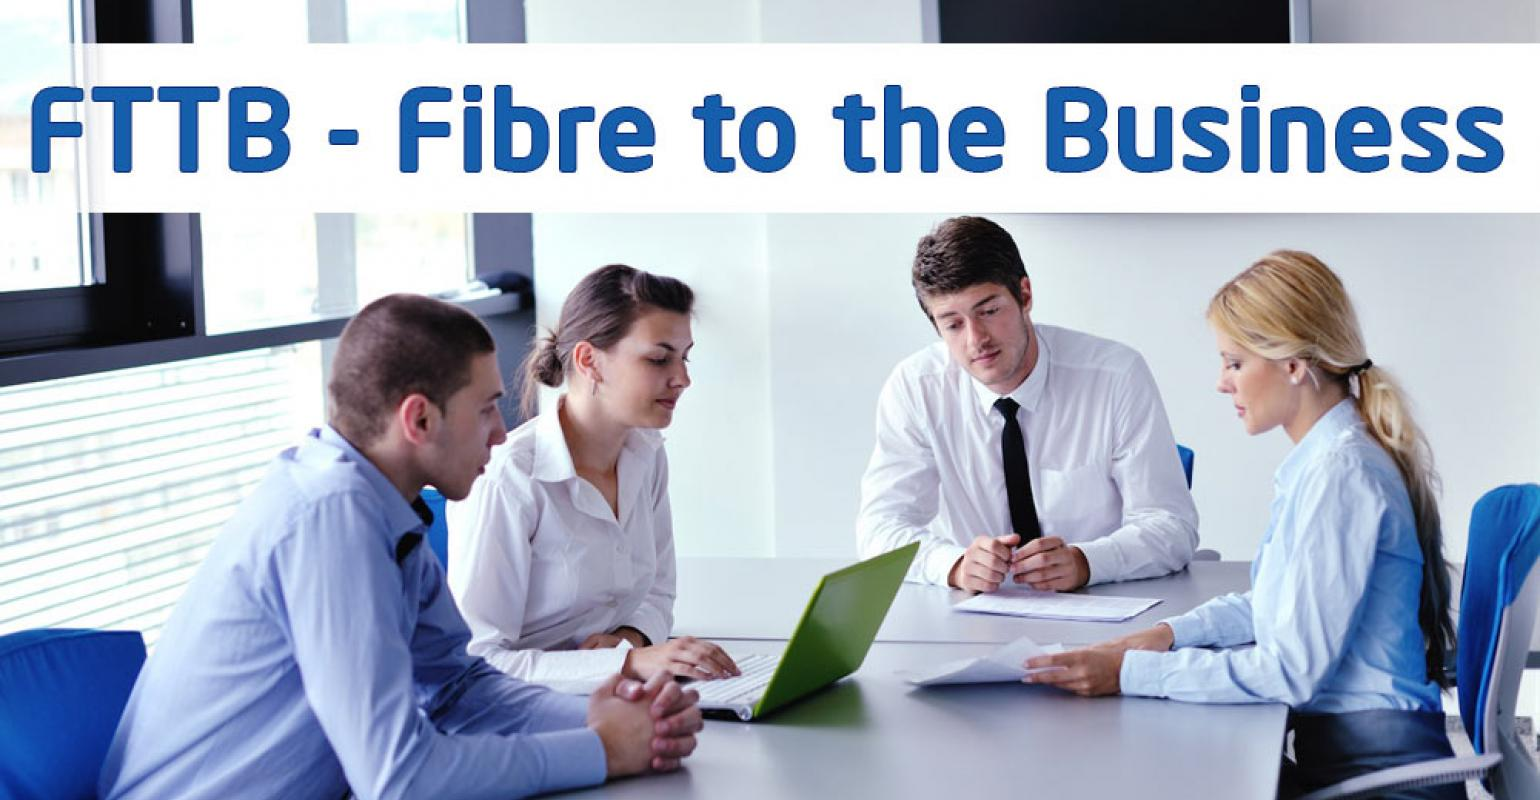 Enterprise Fibre to the business - 10mbps to 200mbps options FROM